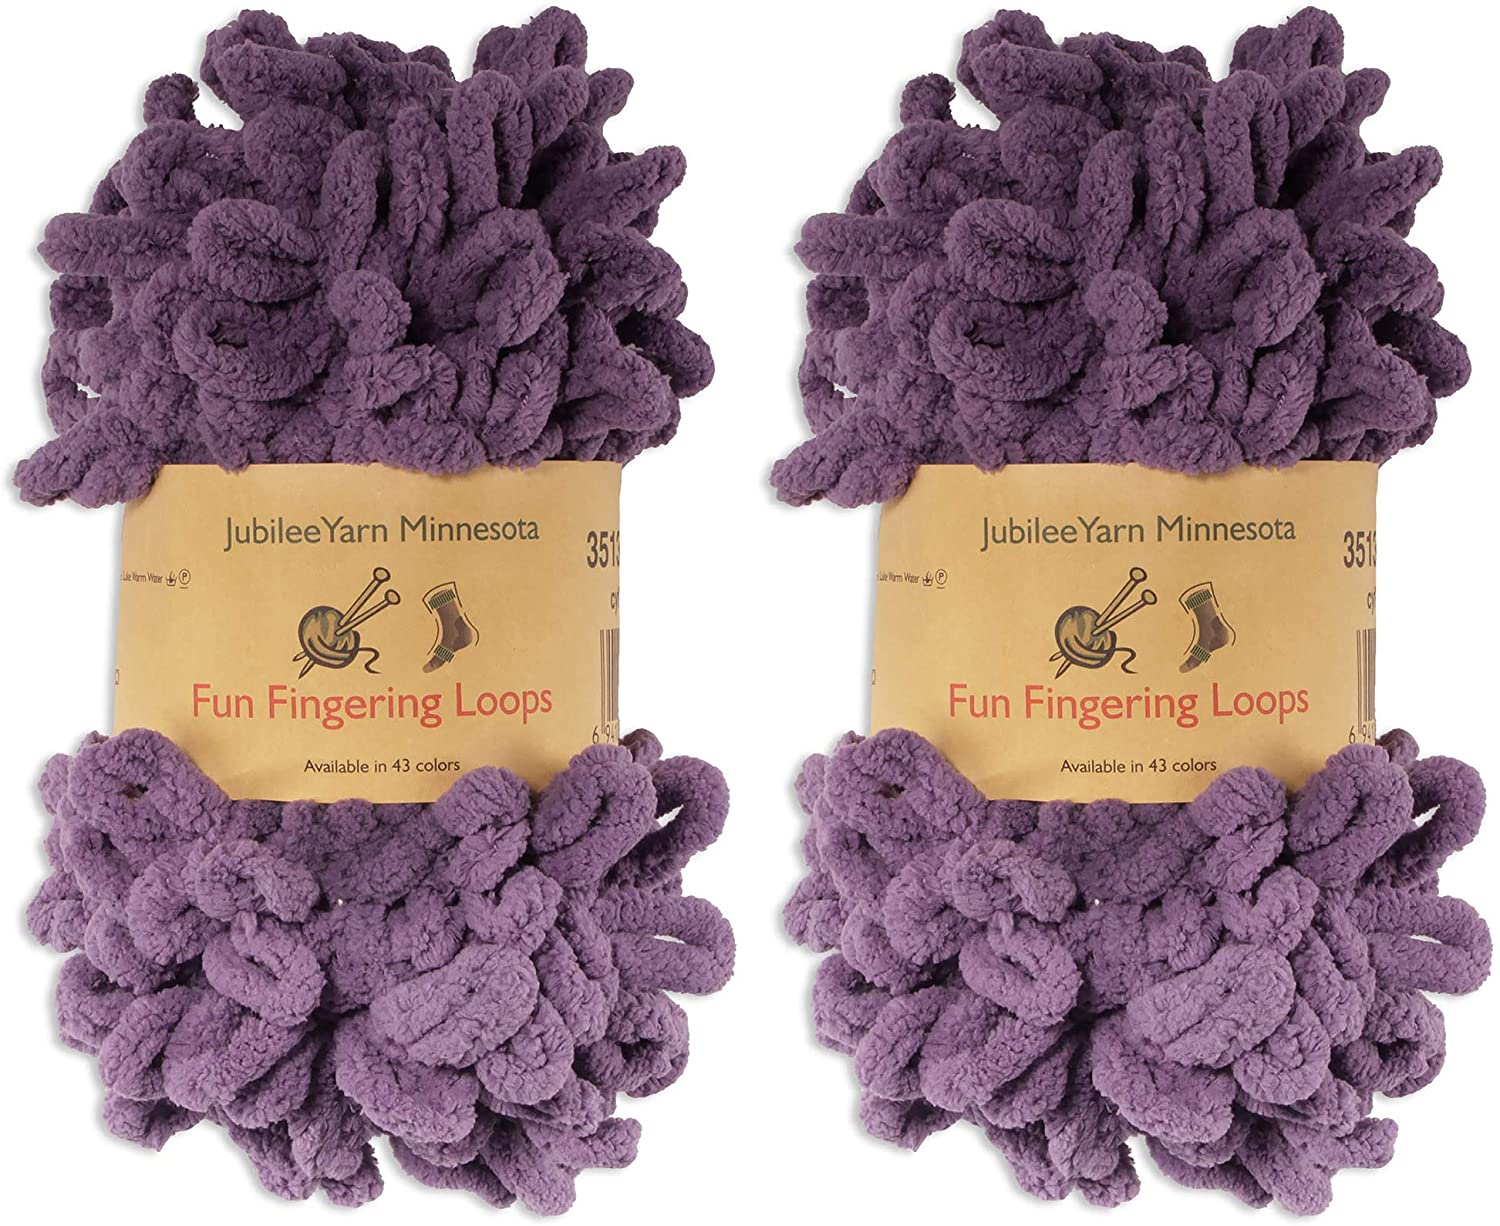 BambooMN Finger Knitting Yarn - Fun Finger Loops Yarn - 100% Polyester - Grape Compote - 2 Skeins